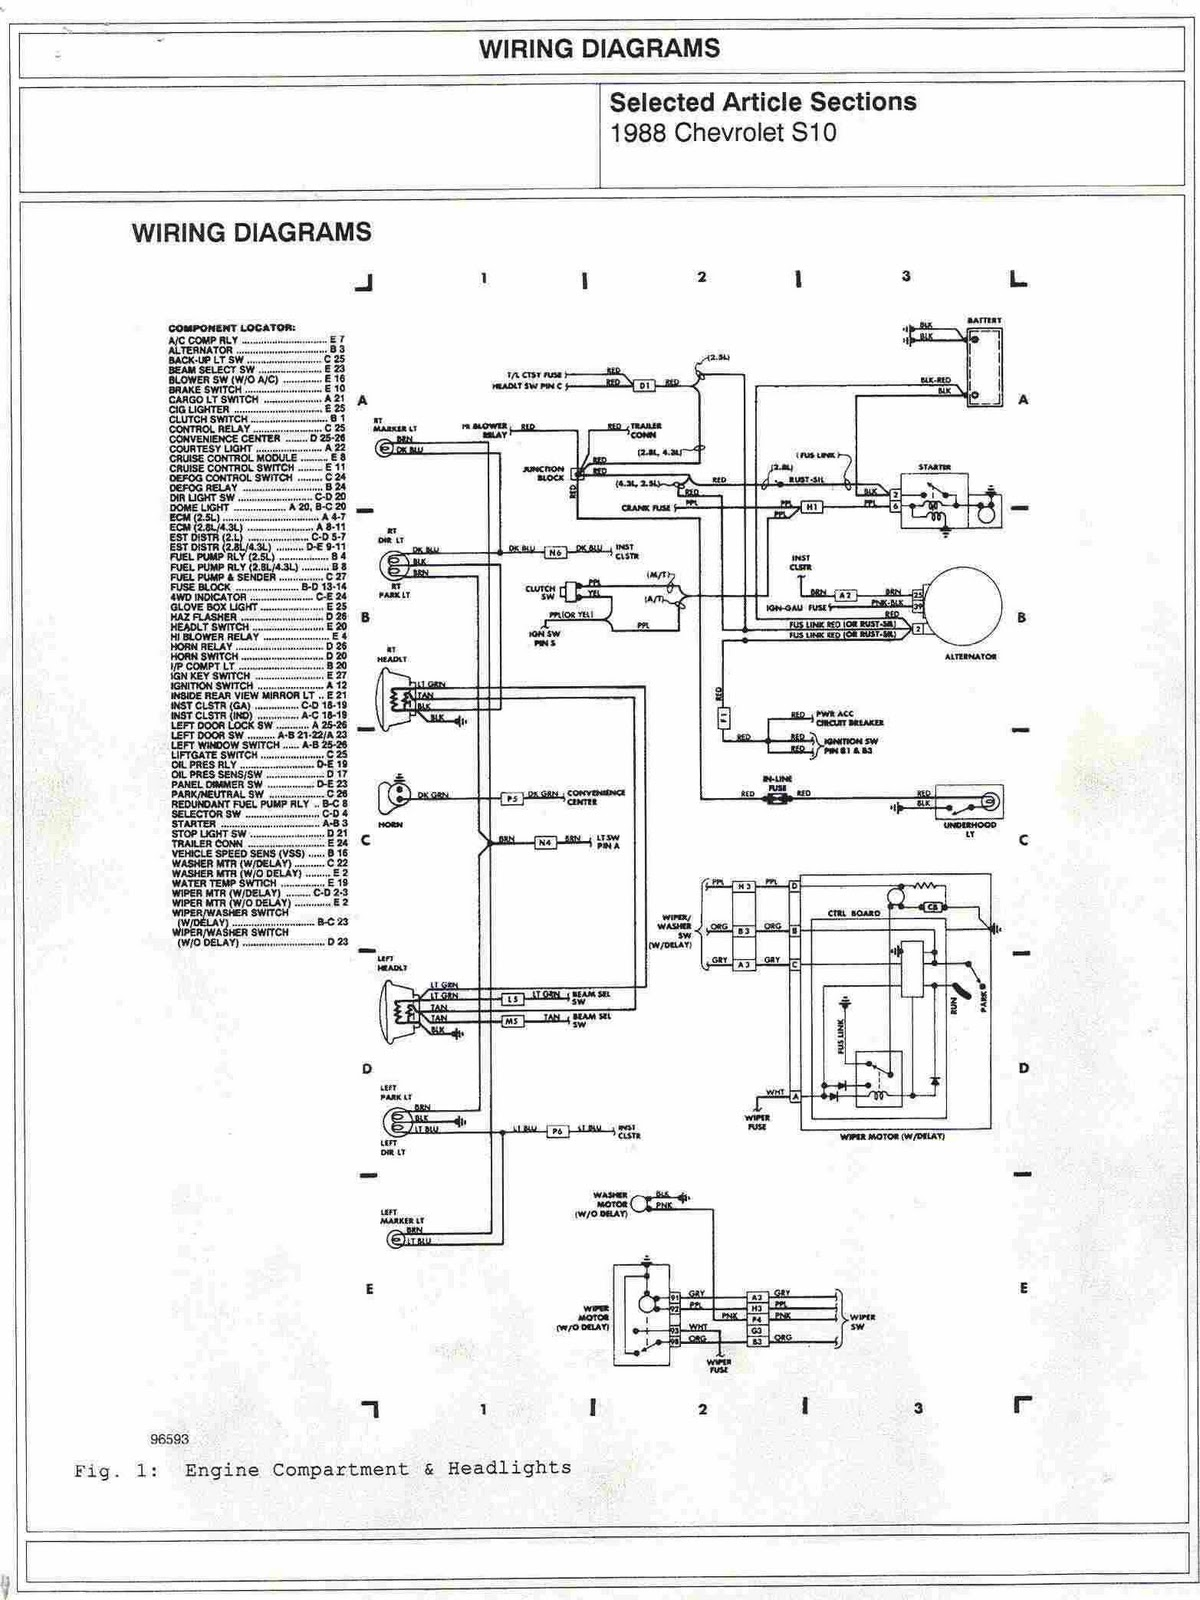 Turn Signal Wiring Diagram For 2002 Chevy S10 Pick Up Library